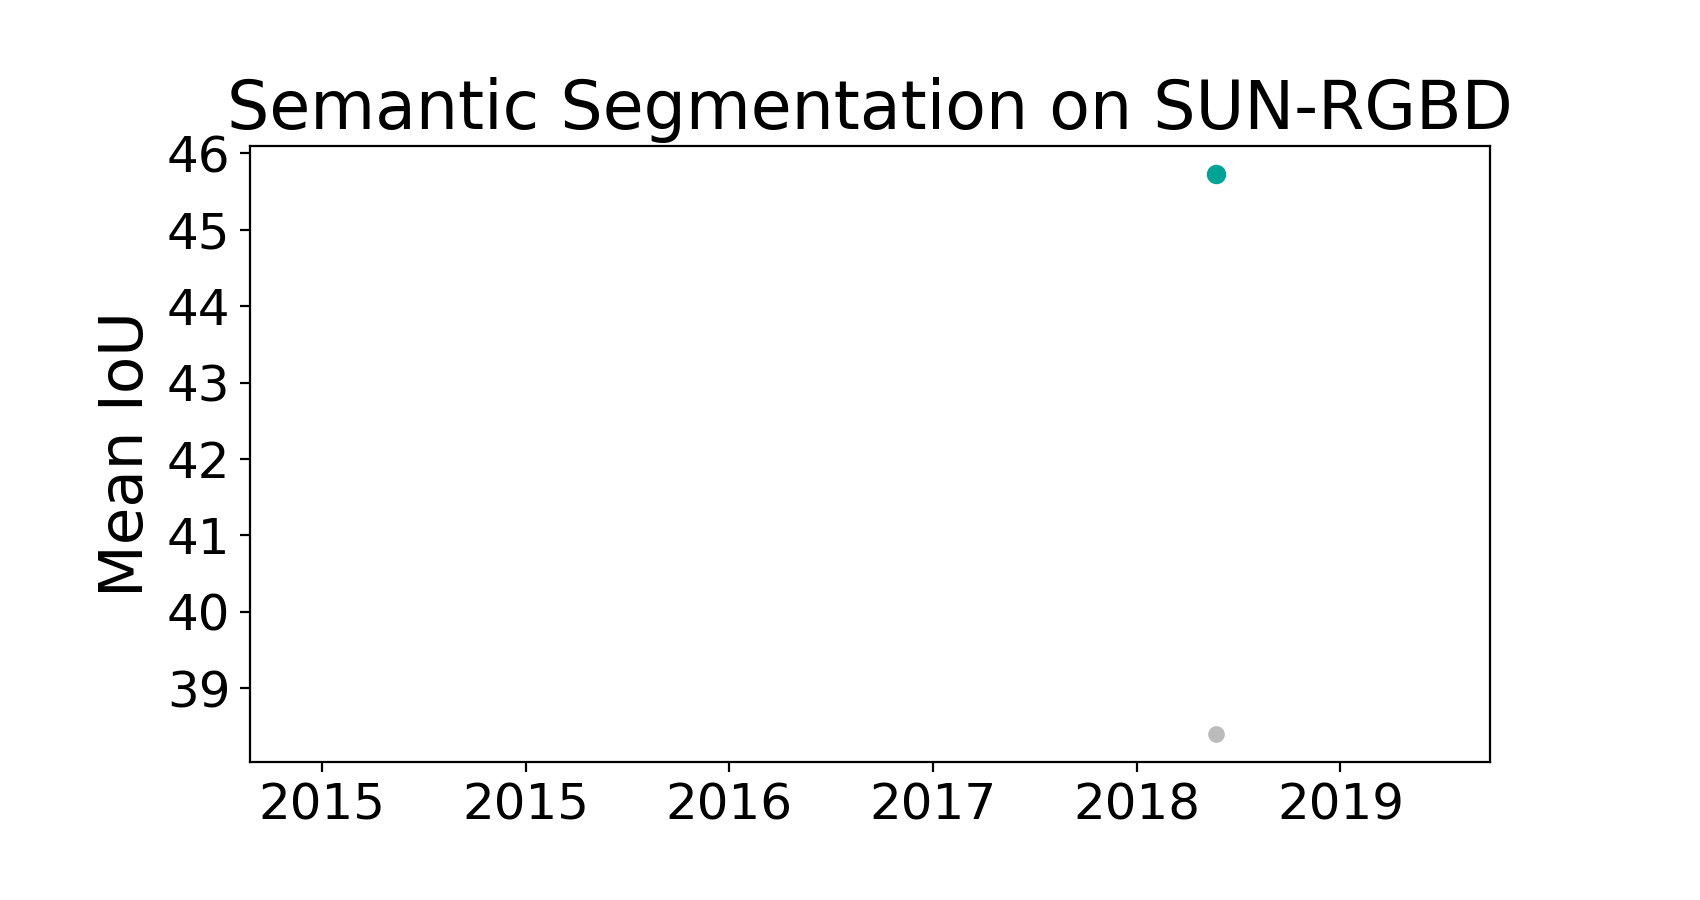 State-of-the-art table for Semantic Segmentation on SUN-RGBD